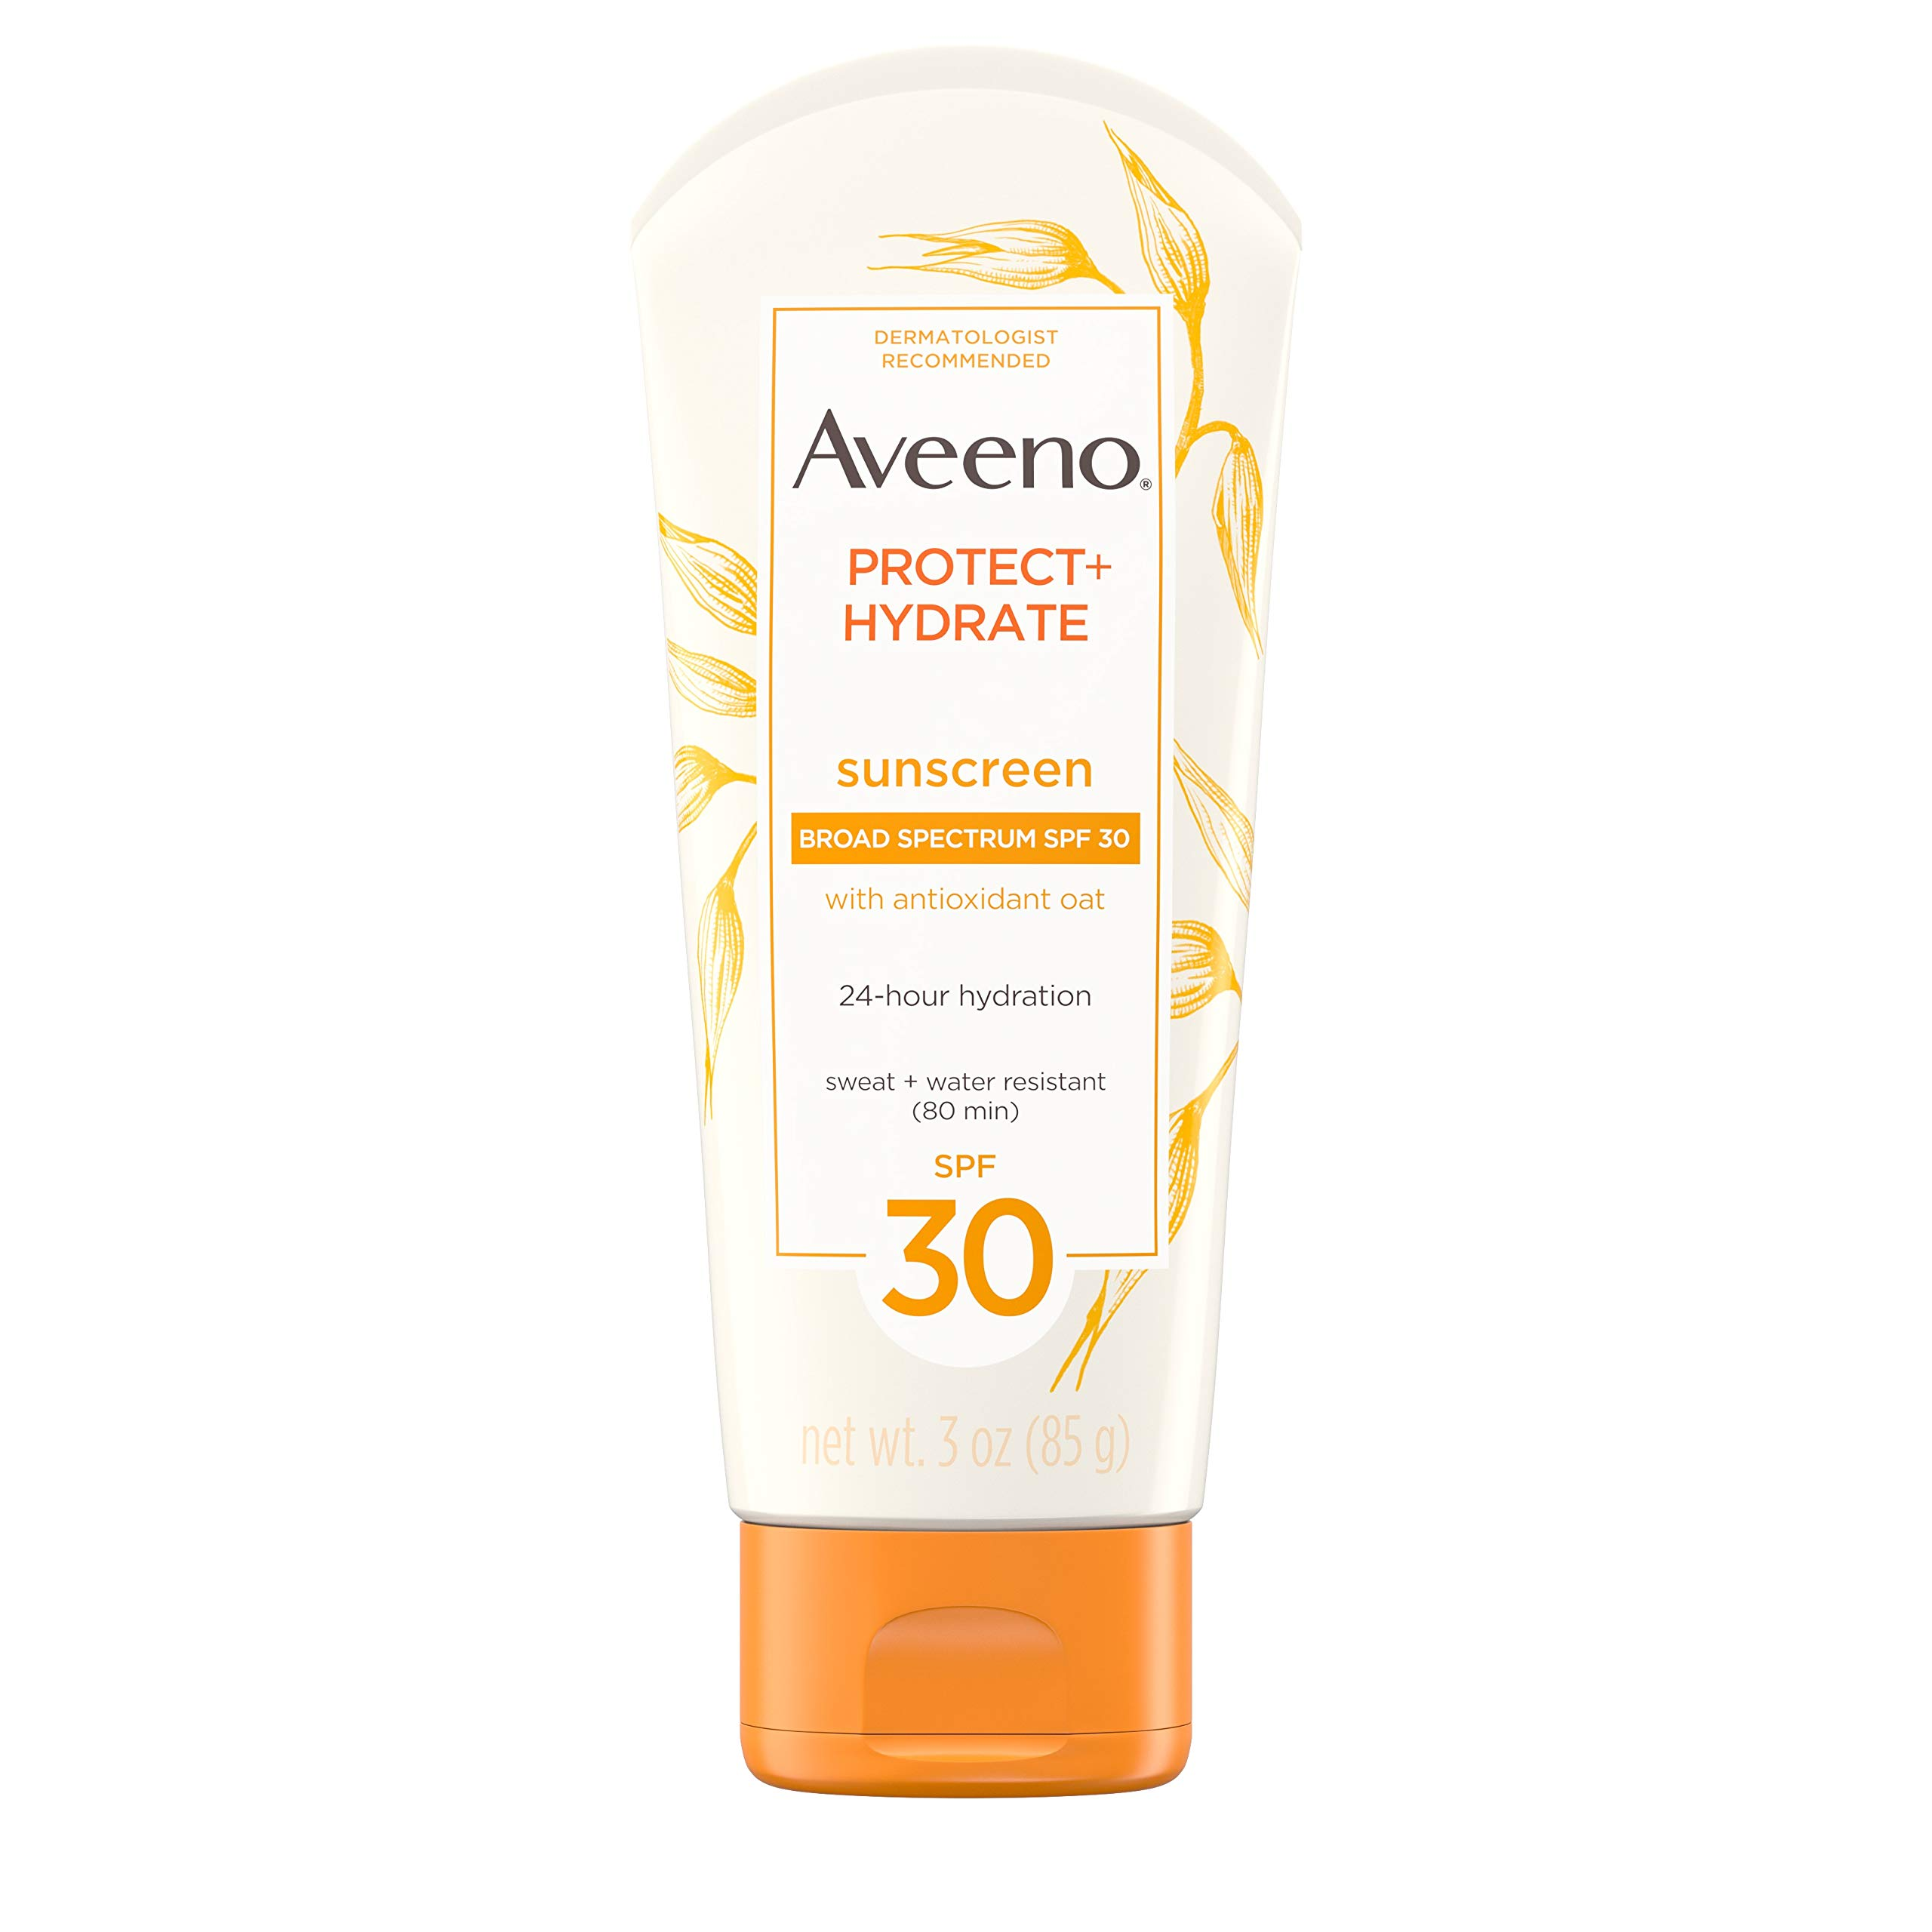 Aveeno Protect + Hydrate Face-Moisturizing Sunscreen Lotion with Broad Spectrum SPF 30 & Antioxidant Oat, Oil-Free, Lightweight, Sweat- & Water-Resistant Sun Protection, Travel-Size, 3 oz